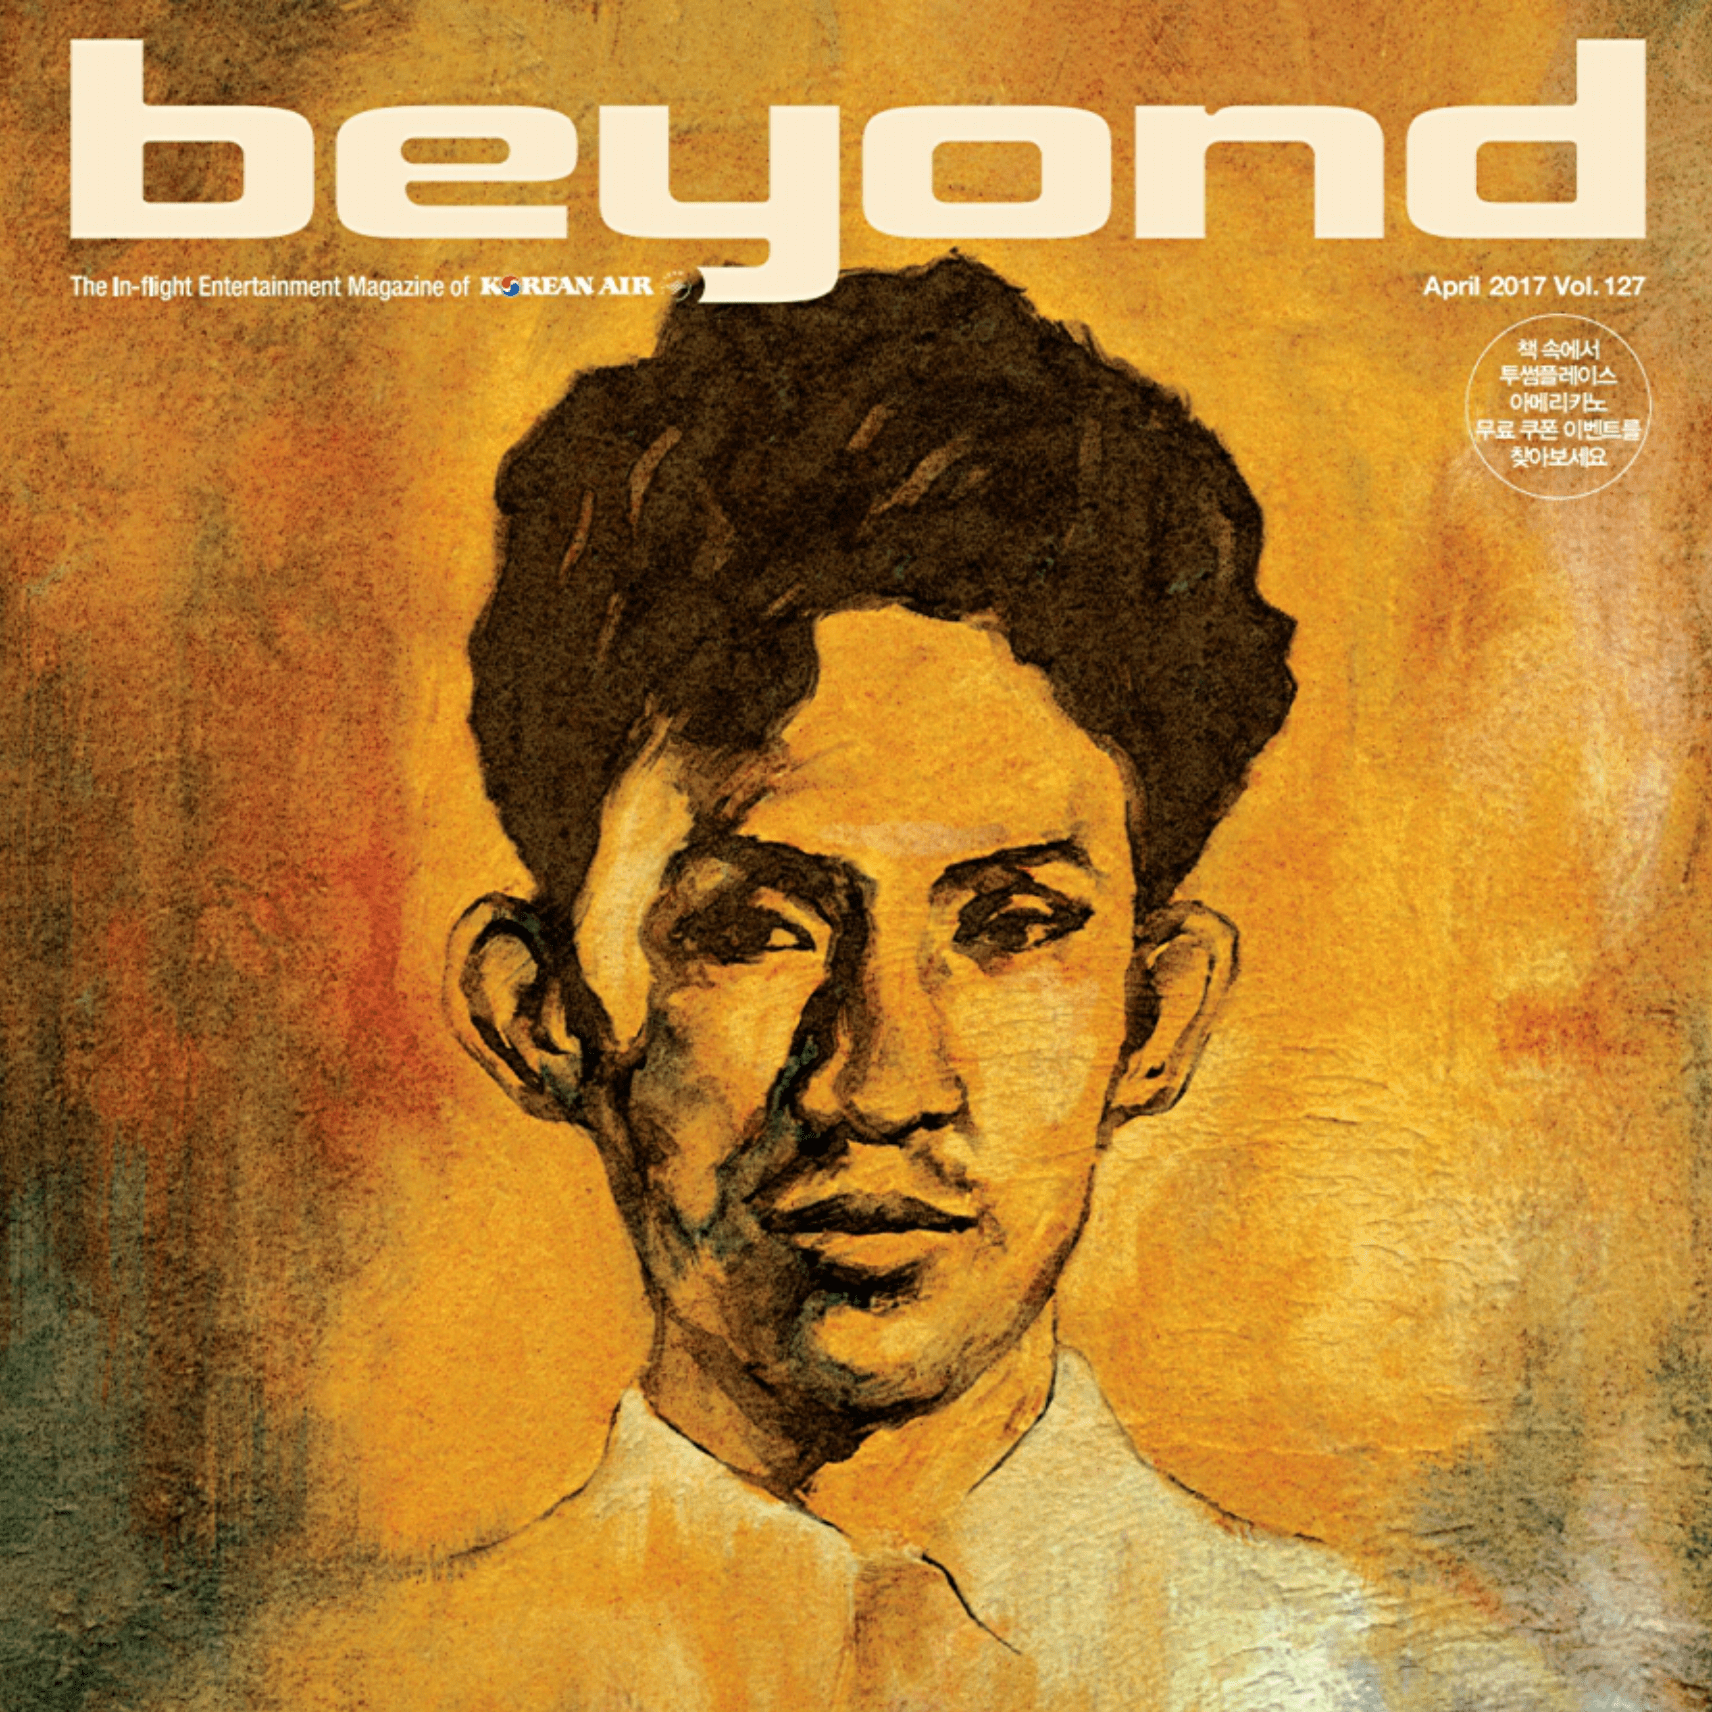 Beyond Vol. 127 - April 2017 - 116 pages